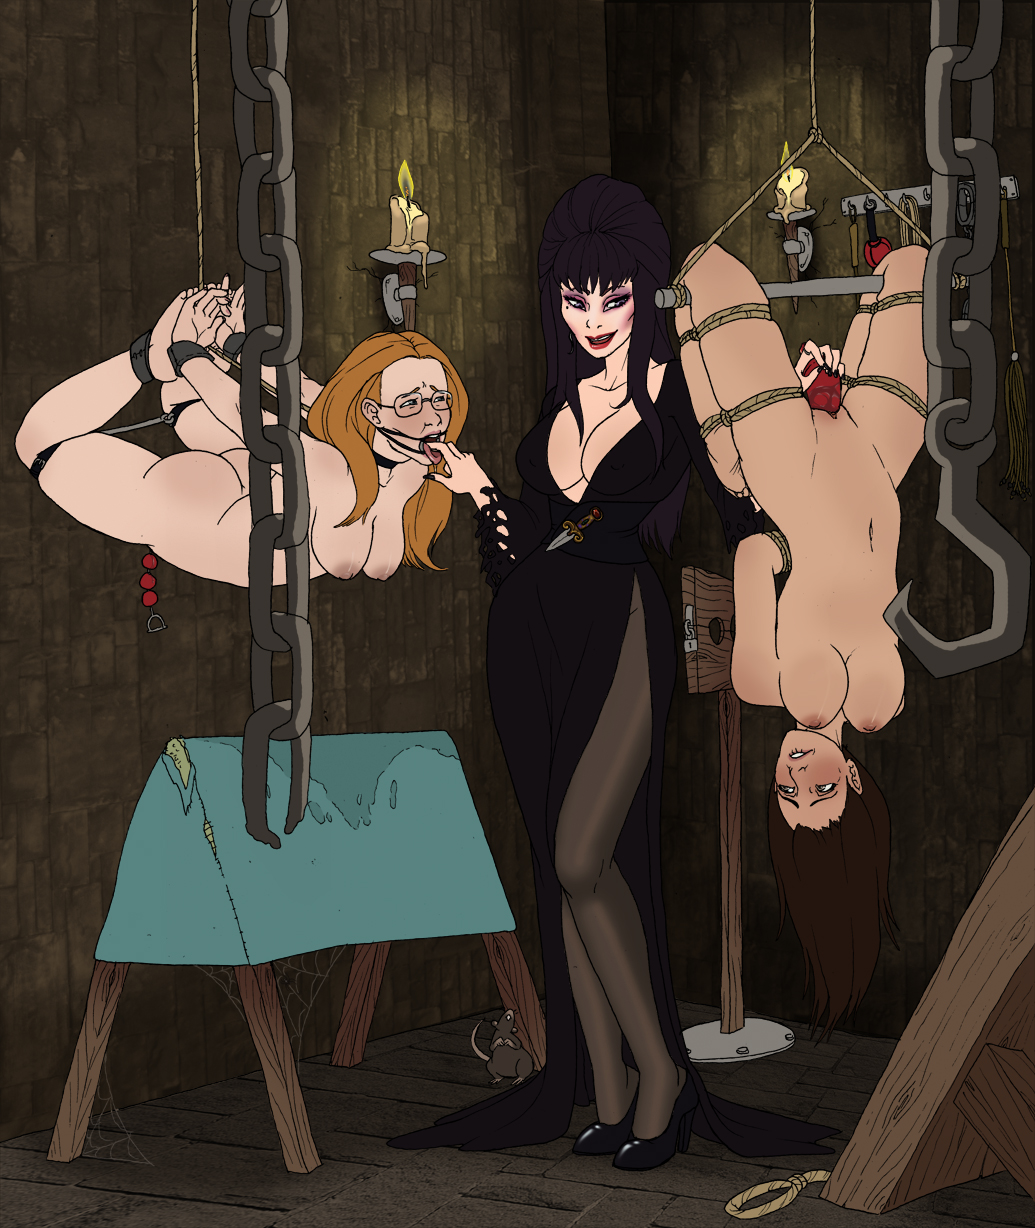 the tits dark elvira mistress of 5 nights at freddy's toy chica